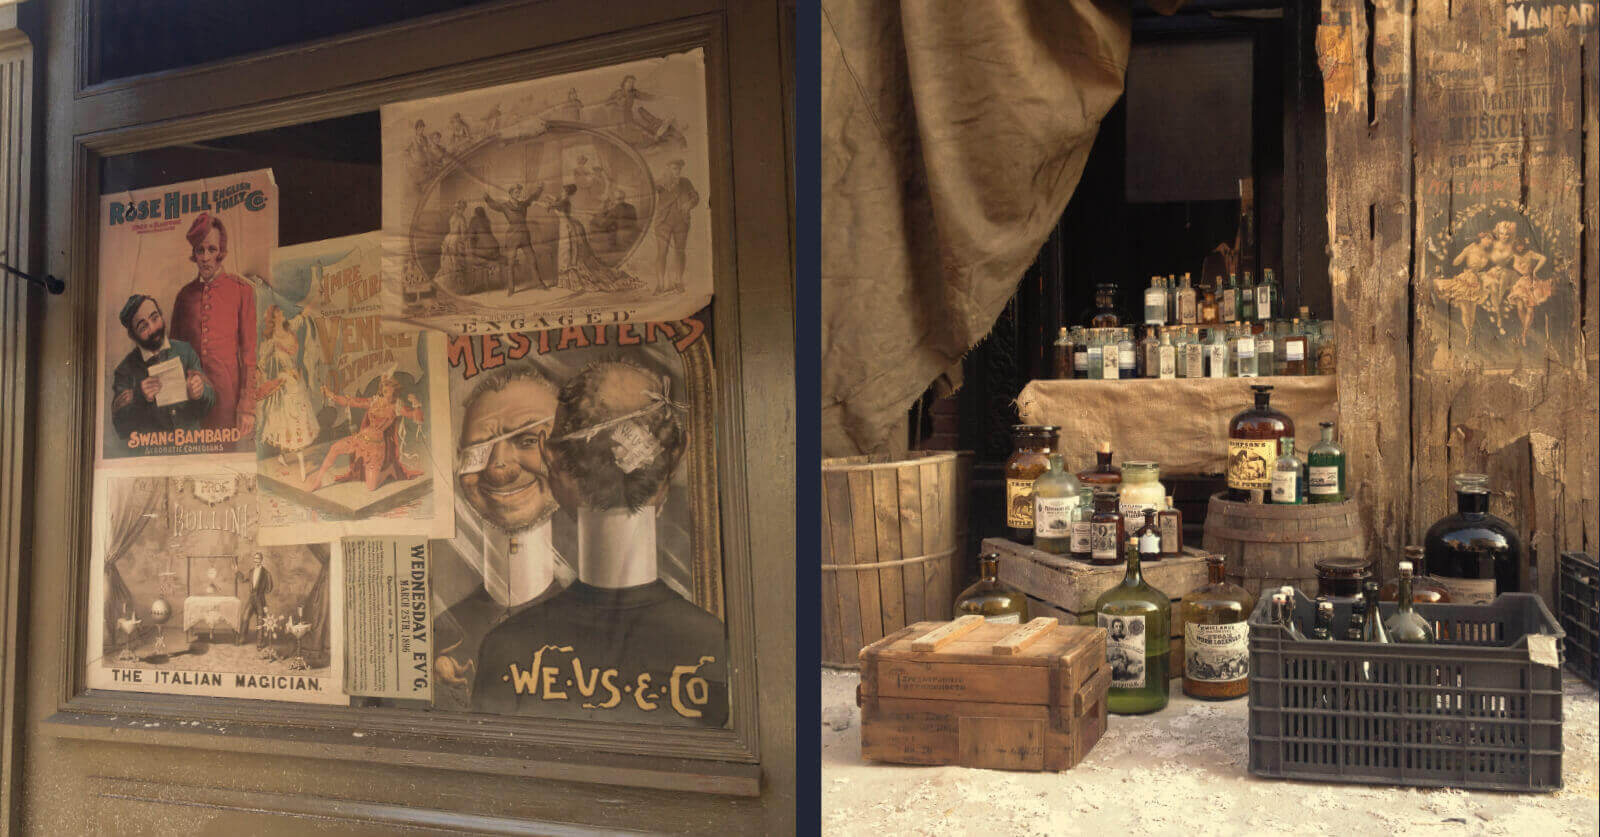 The Alienist - Posters and medical labels